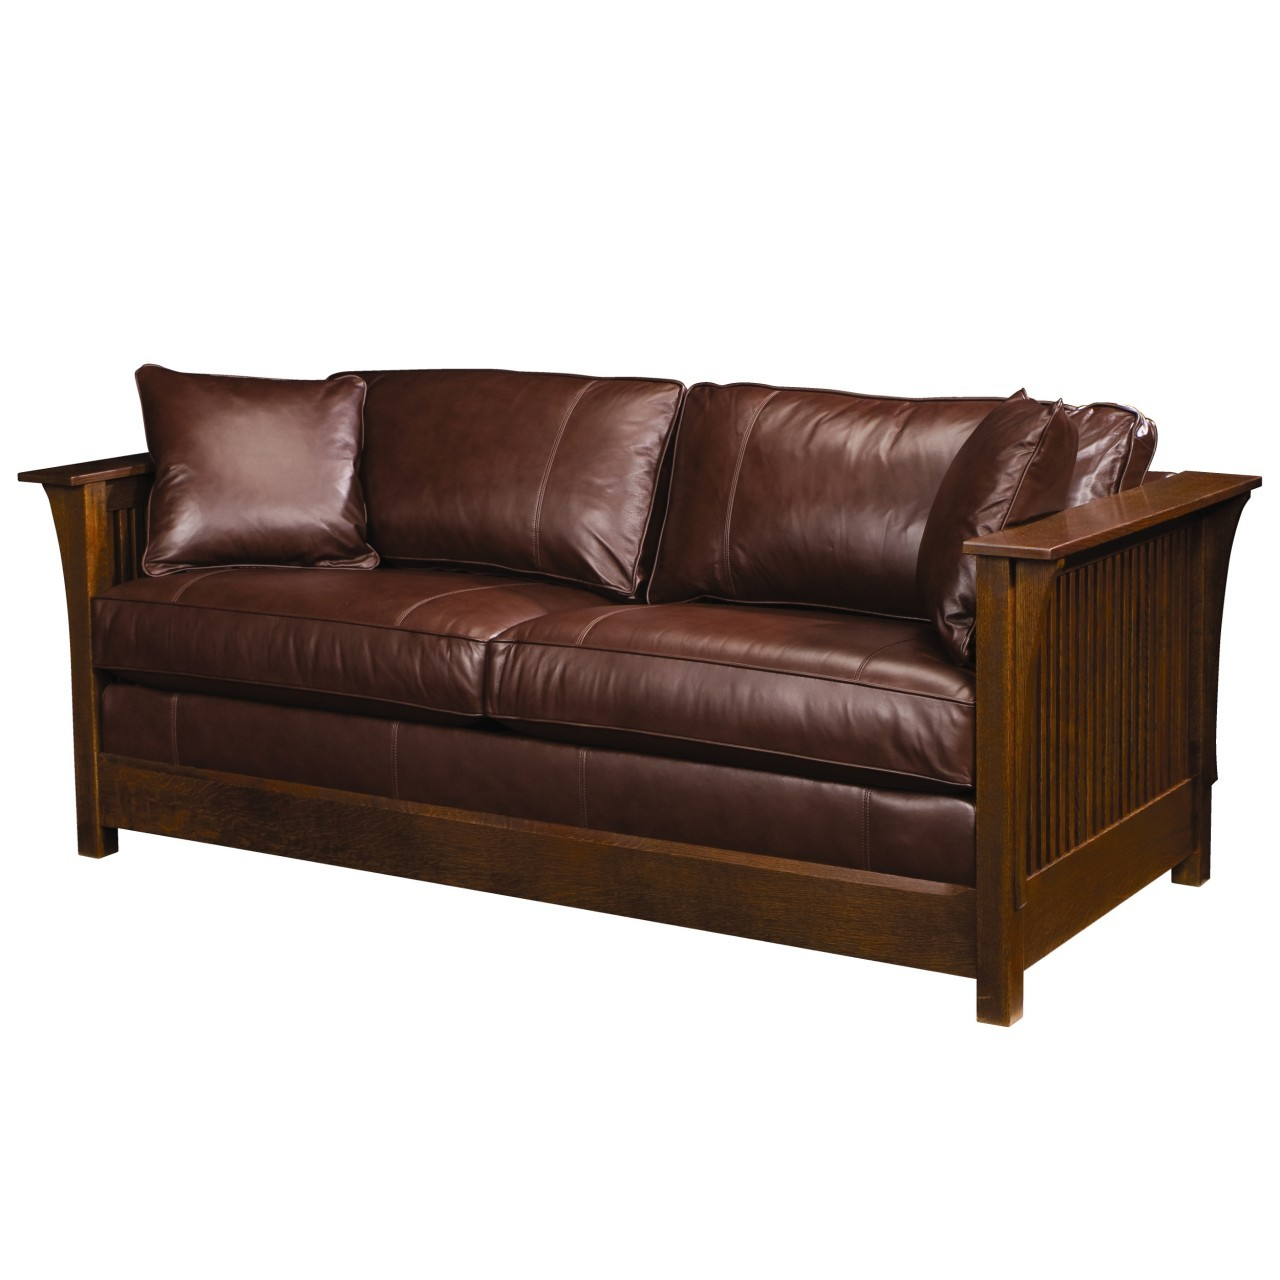 red velvet color American leather sofa bed queen size DSVQNND